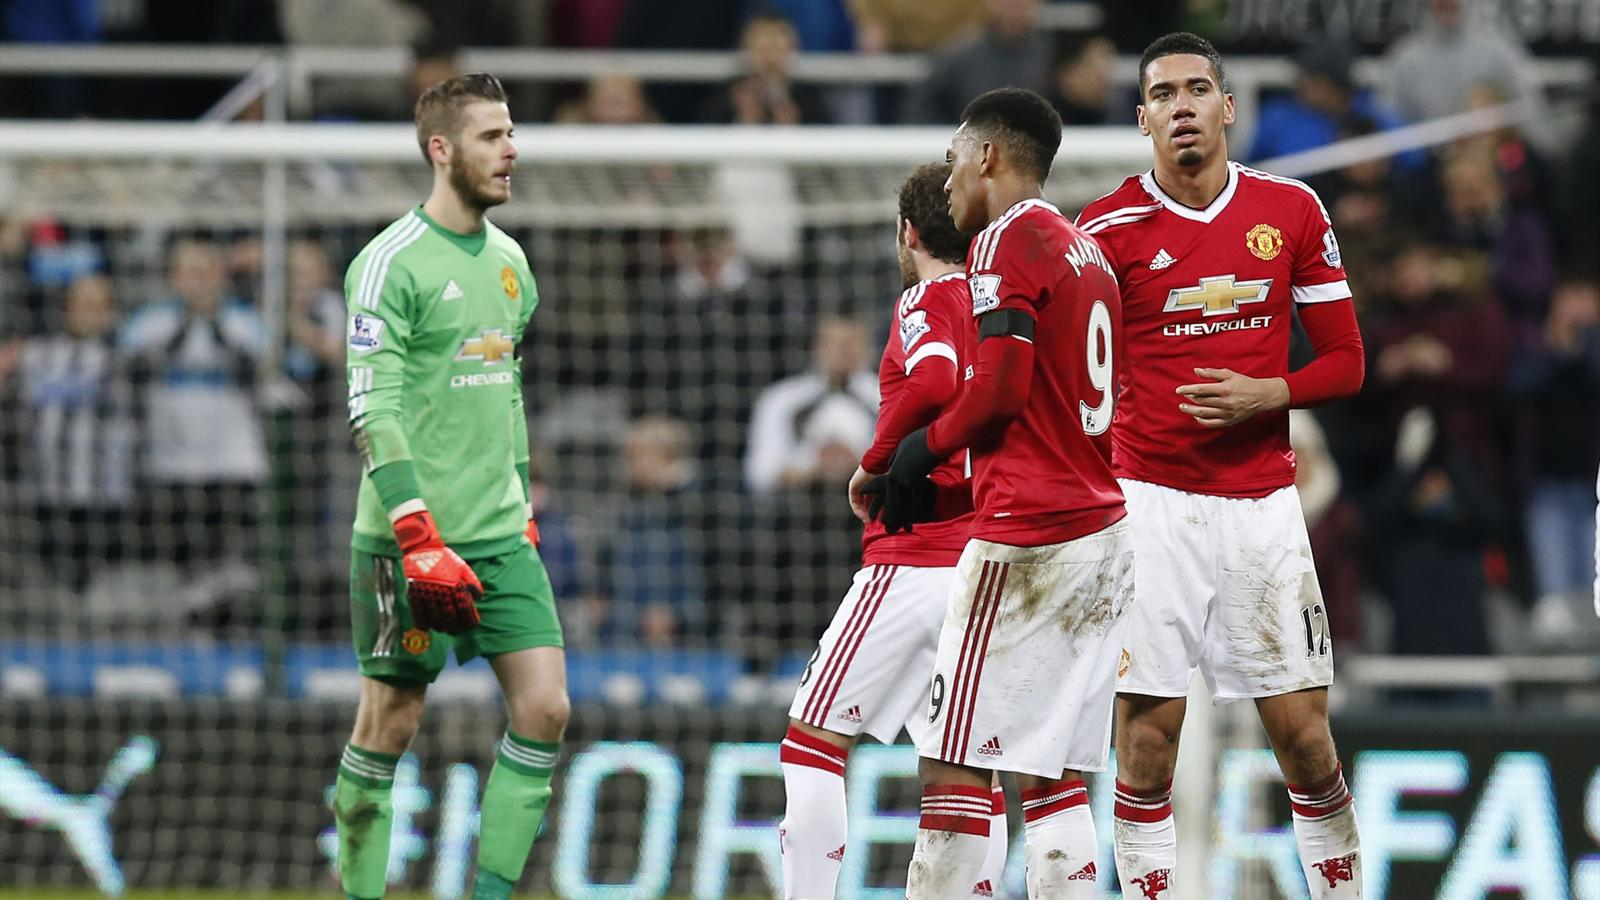 Manchester United's Chris Smalling, Anthony Martial, Juan Mata and David De Gea look dejected at the end of the match